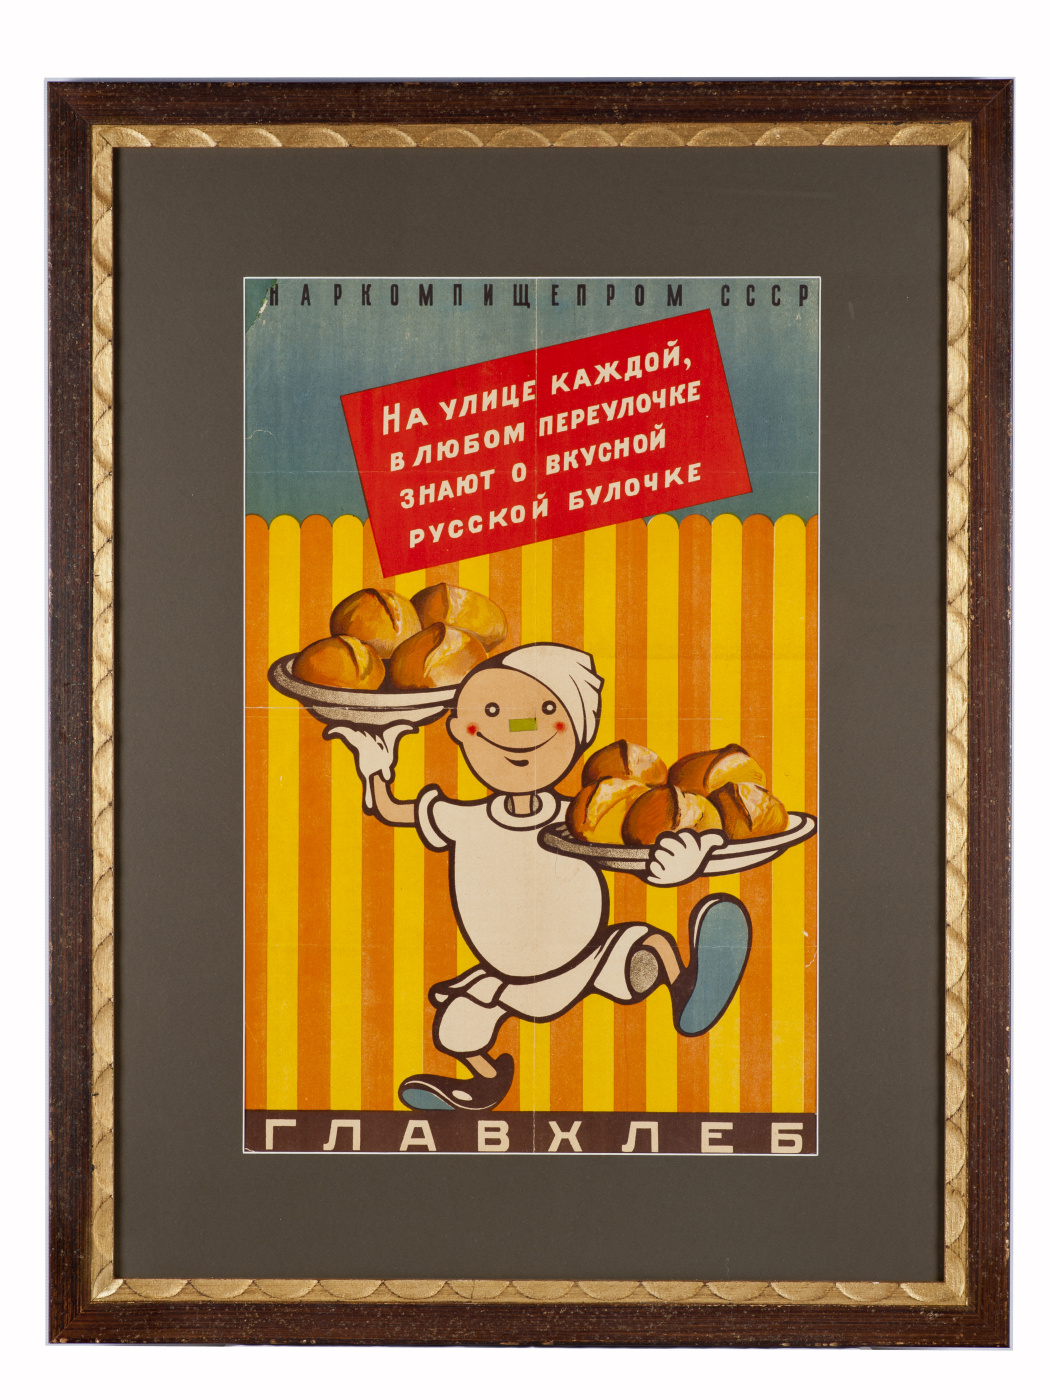 Unknown artist. The NARKOMHARCHOPROMU USSR, GLAVKHLEB On every street, in every lane know about delicious Russian muffin